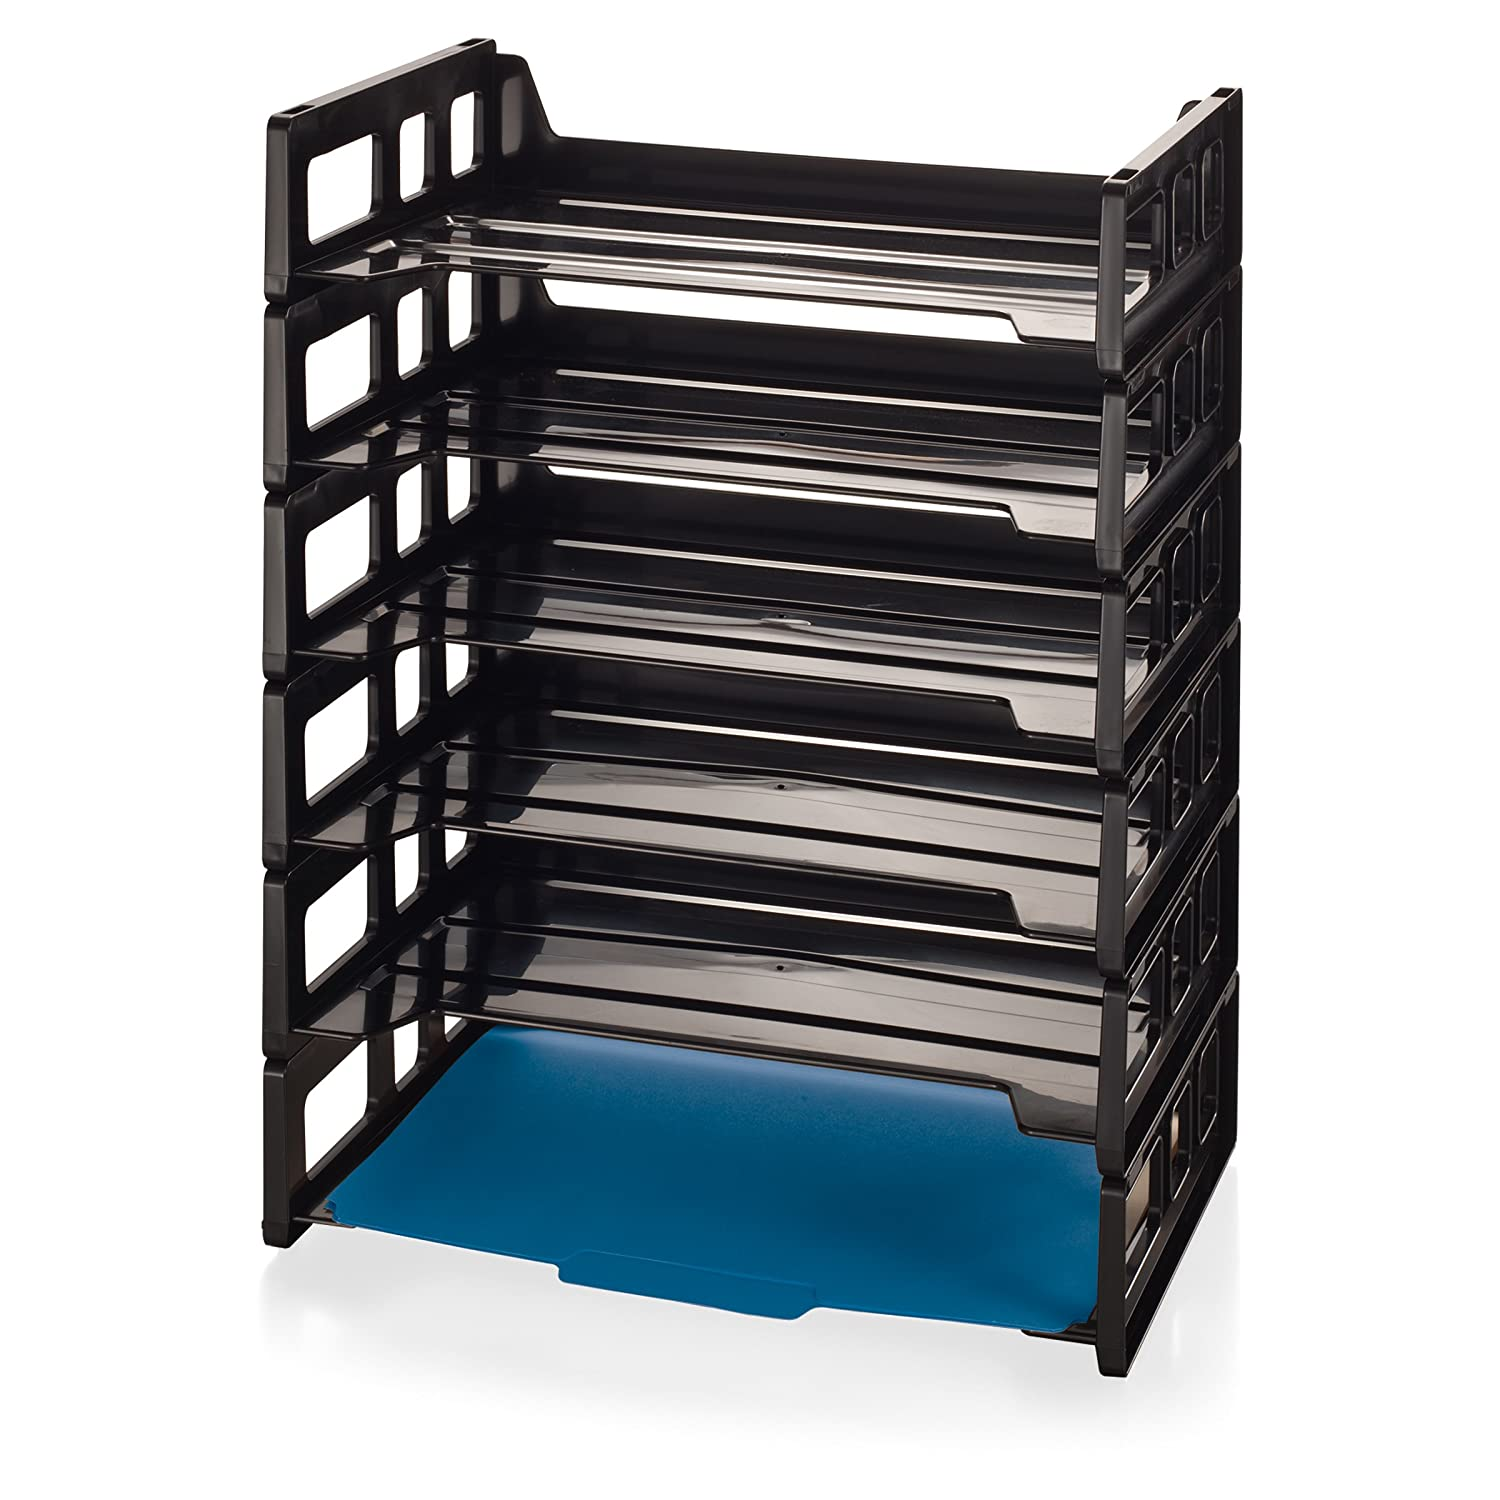 Attirant Amazon.com : Officemate Side Load Letter Tray, Black, 6 Pack (21062) :  Office Desk Trays : Office Products